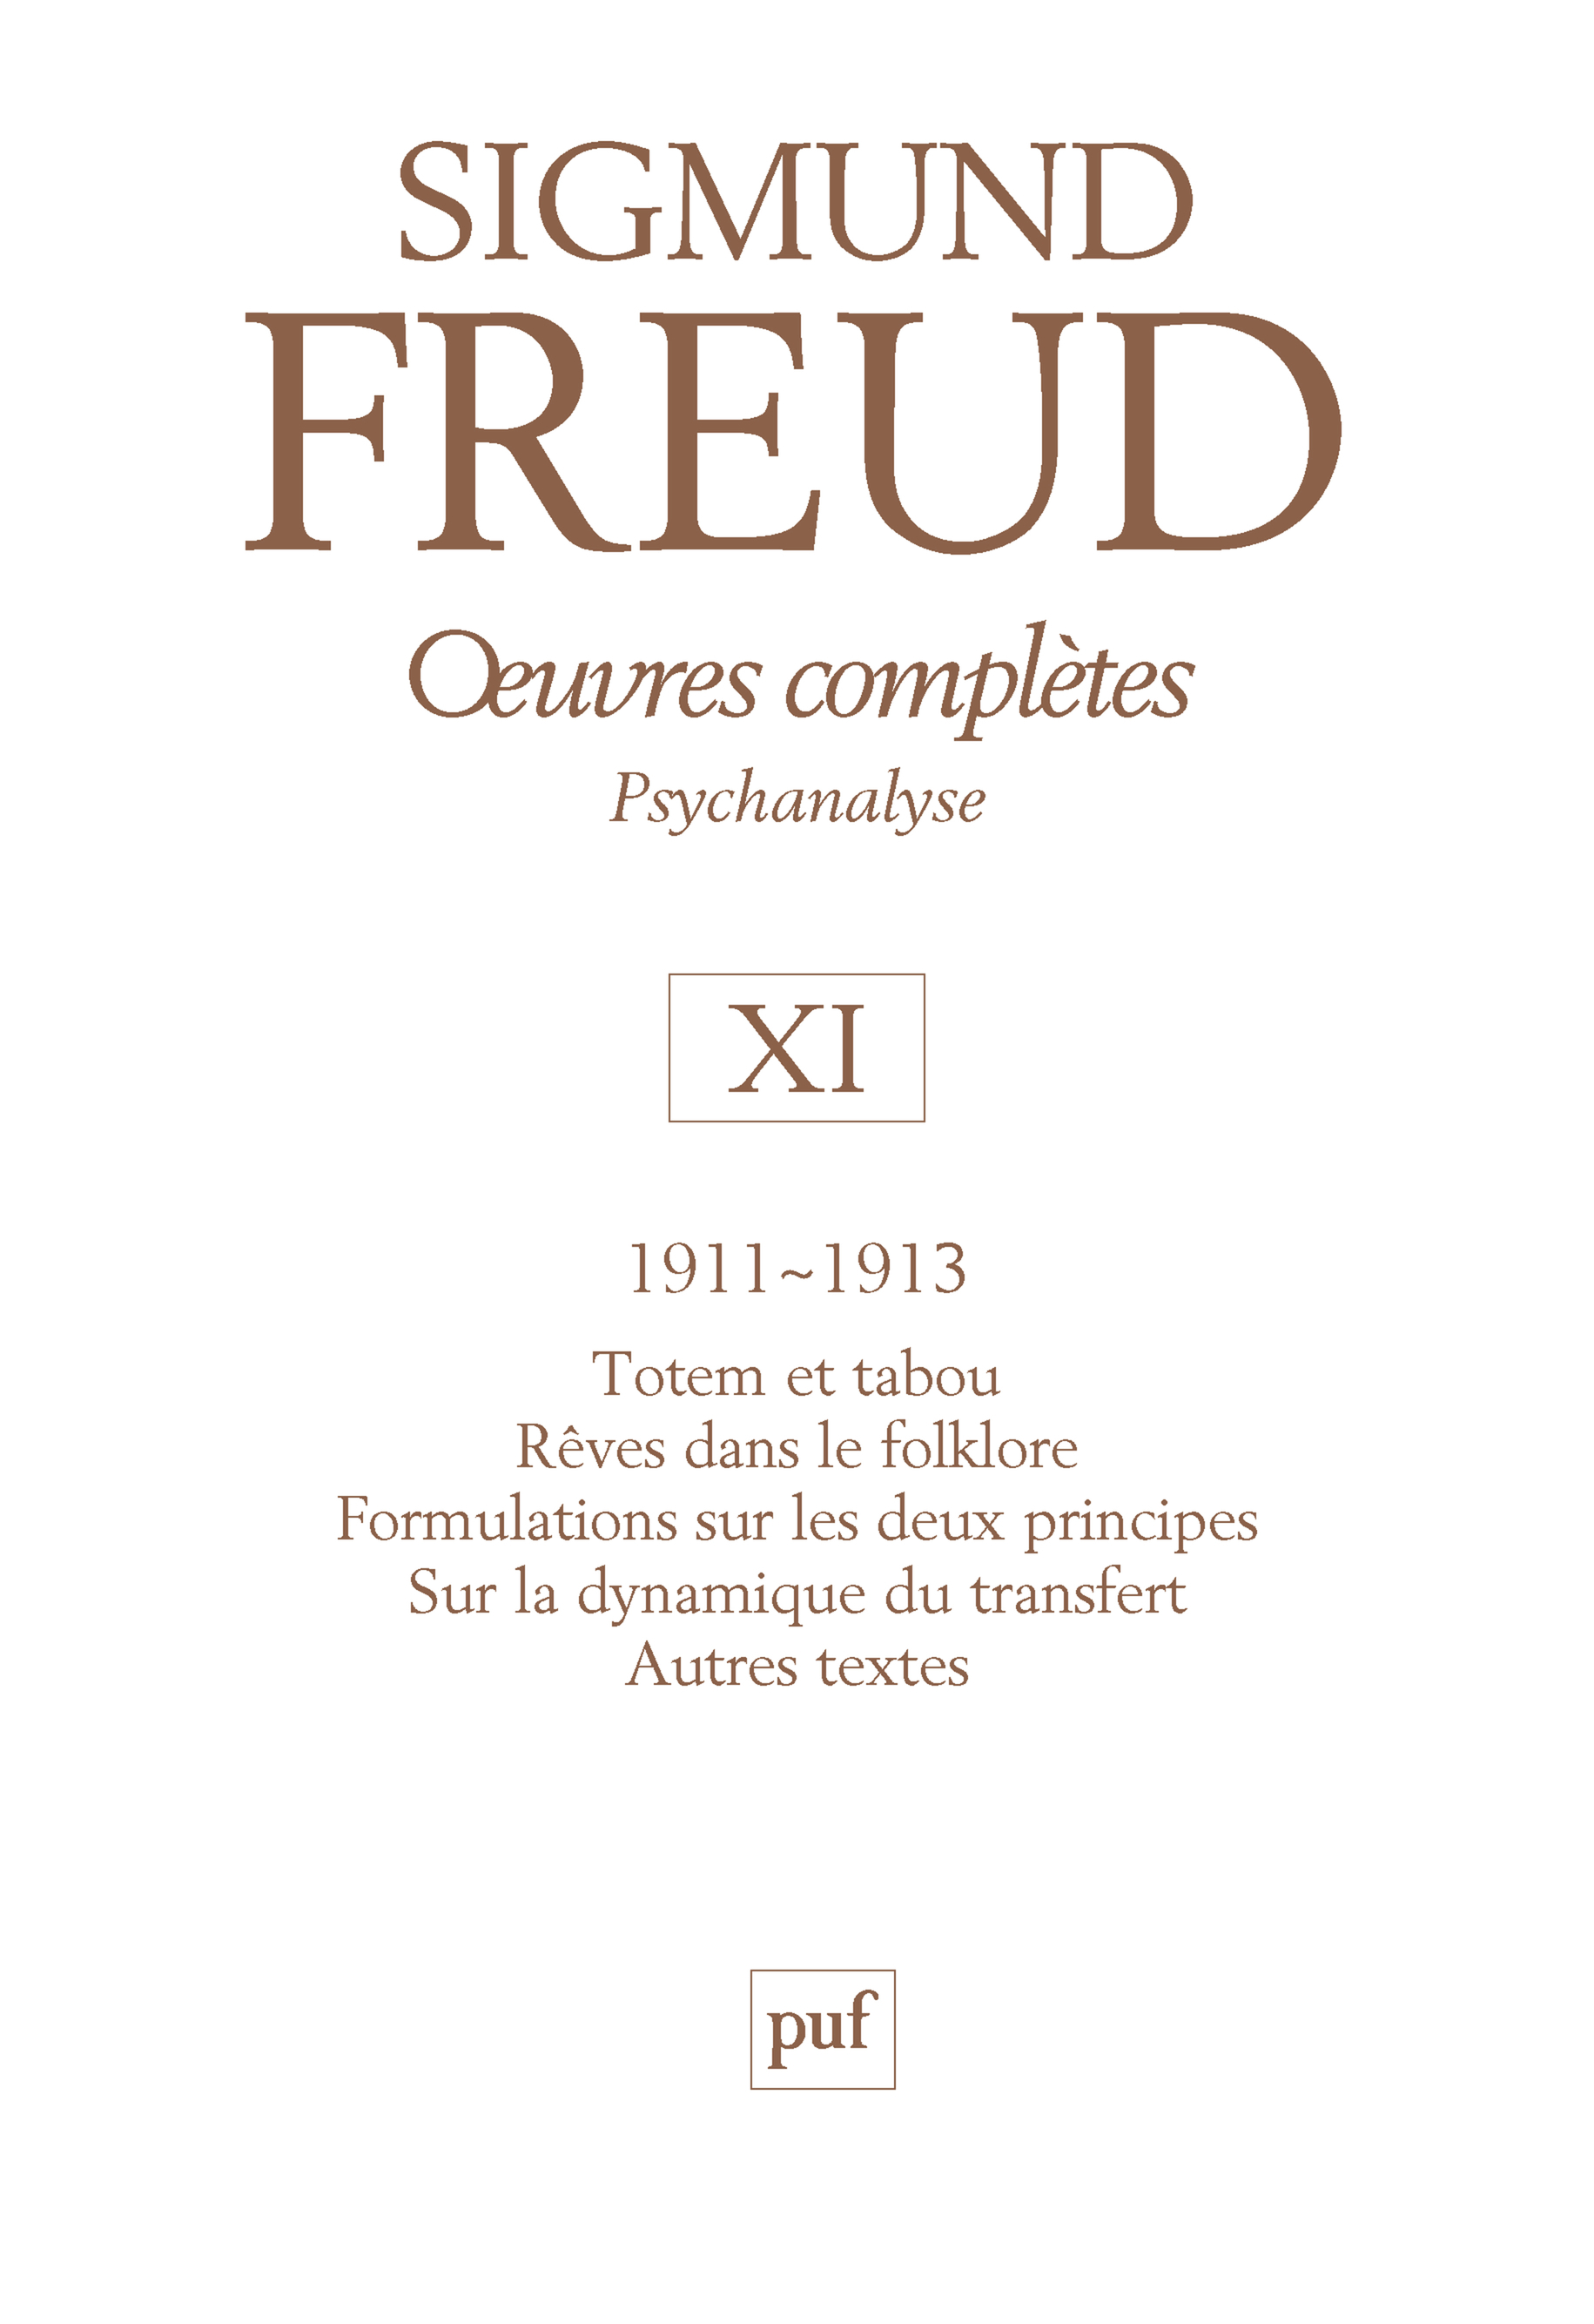 OEUVRES COMPLETES - PSYCHANALYSE - VOL. XI : 1911-1913 - TOTEM ET TABOU. AUTRES TEXTES